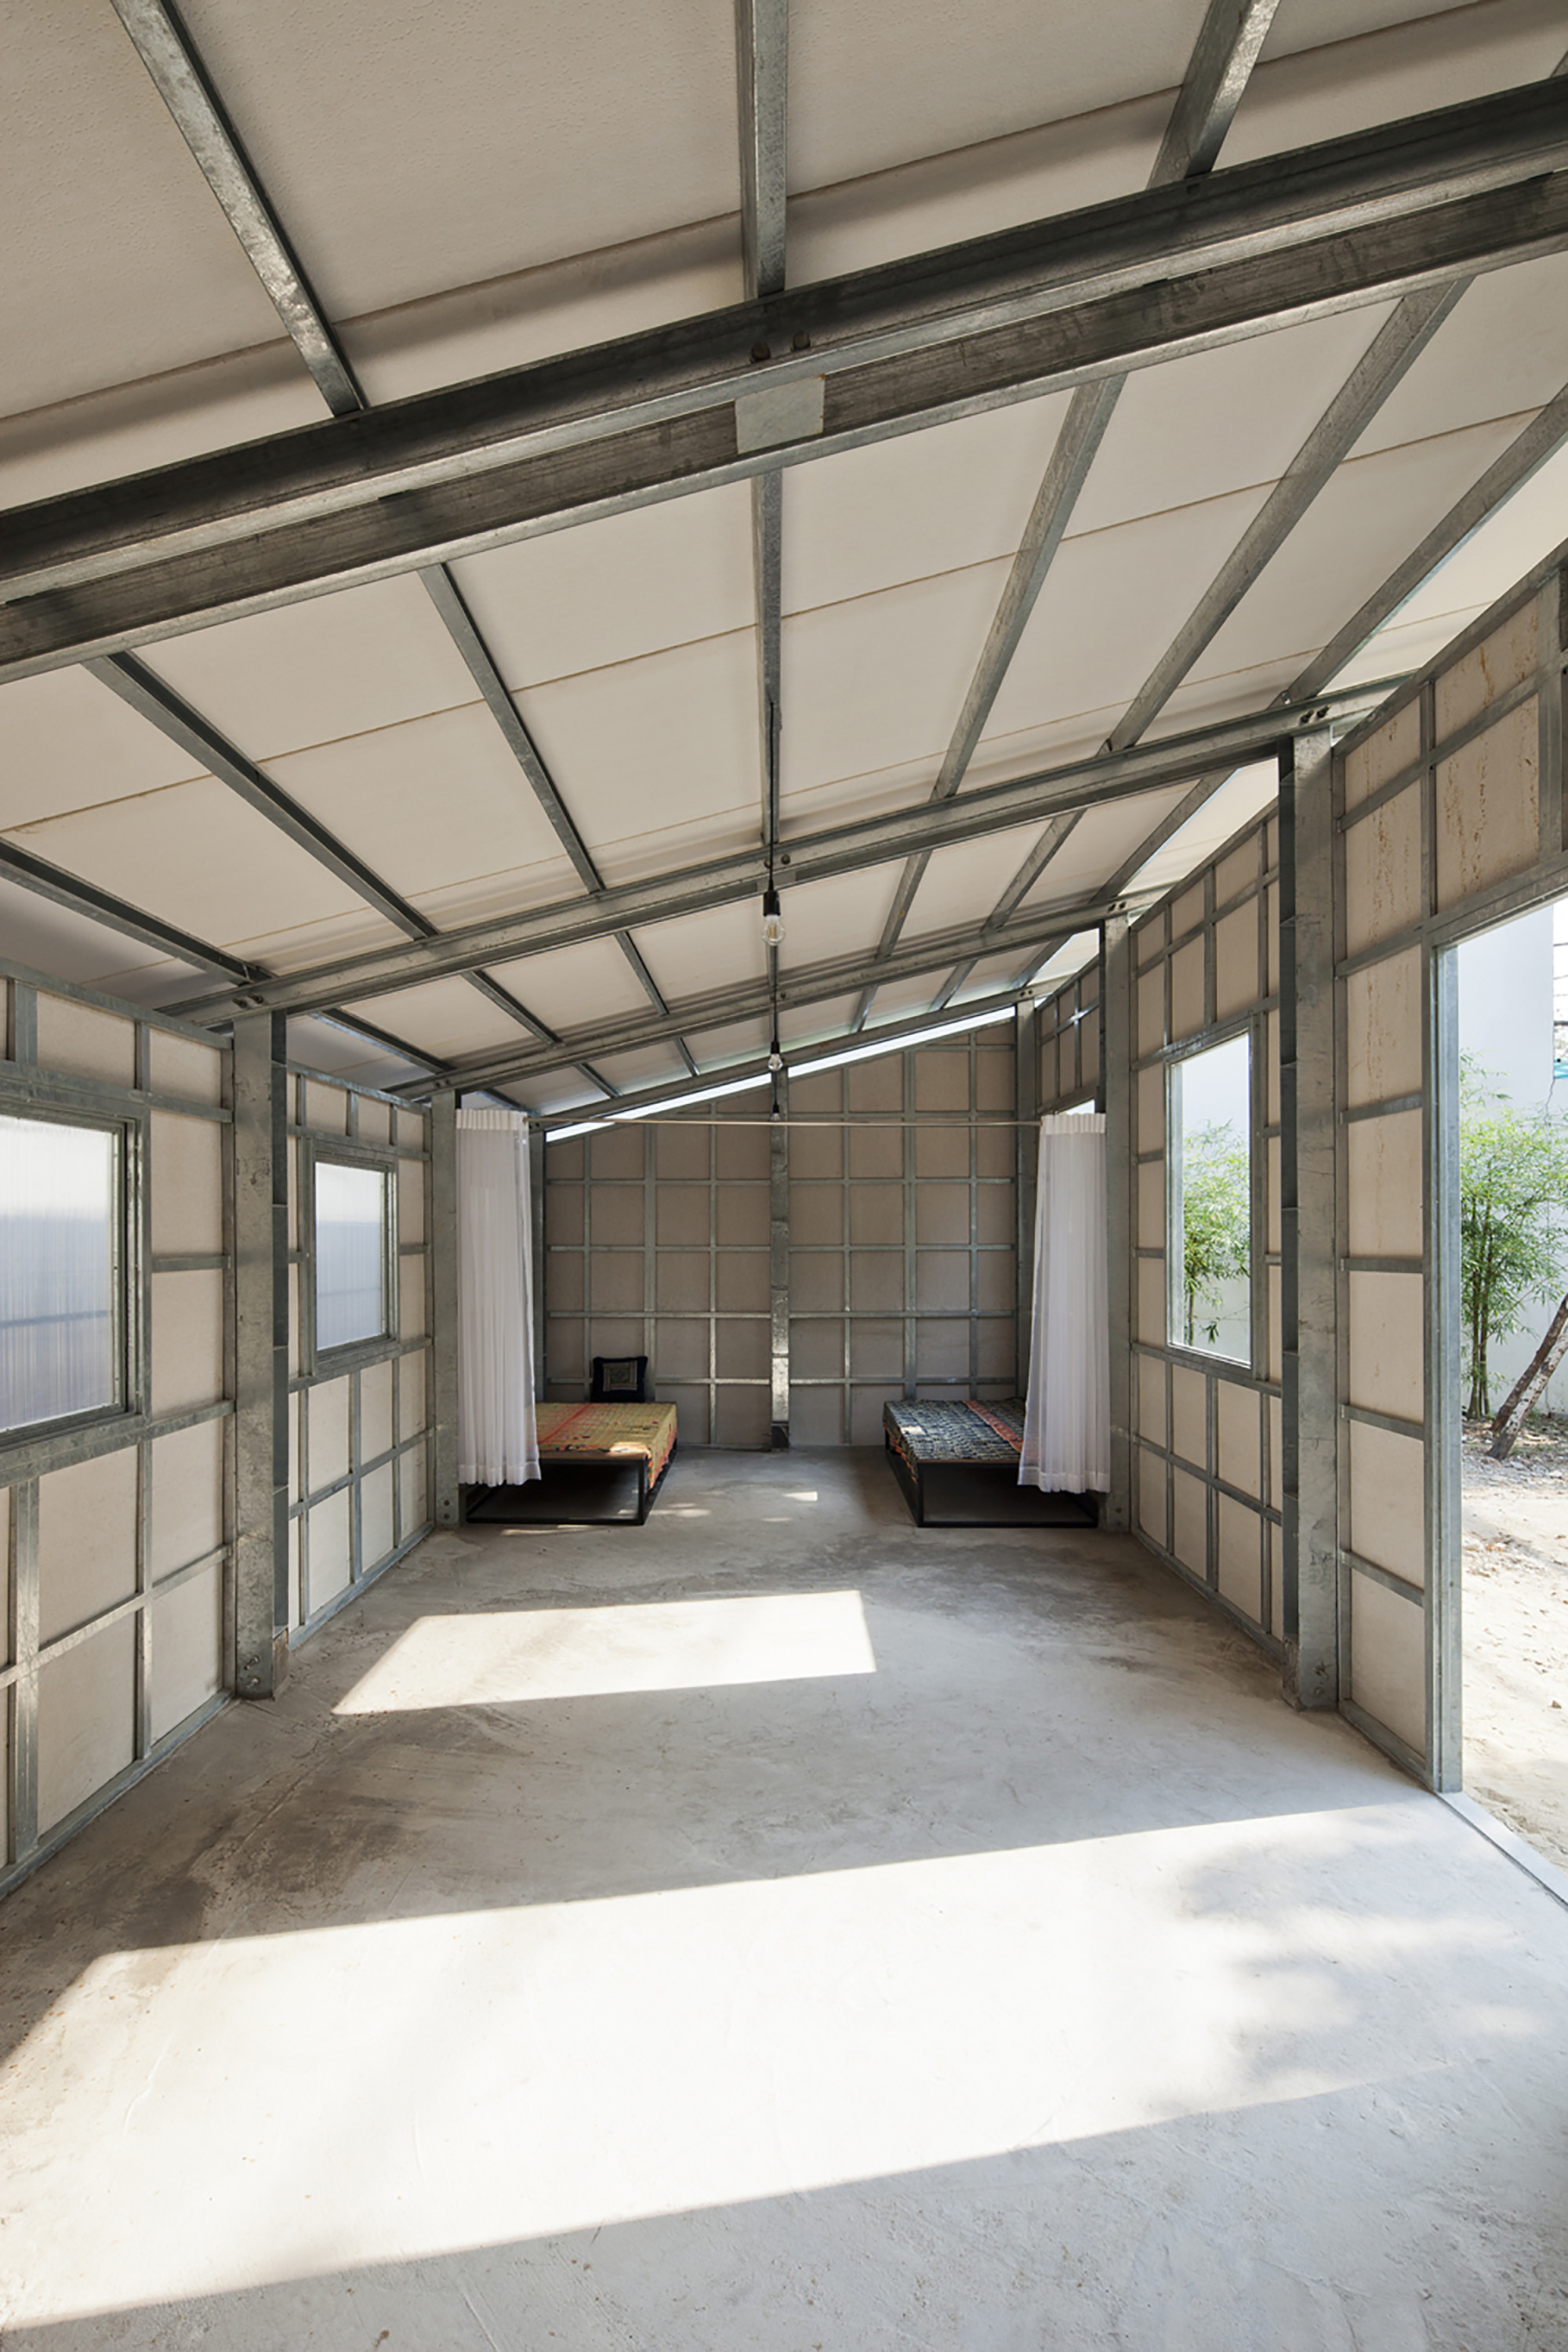 Gallery of s house 3 vo trong nghia architects 9 - Casa de estructura metalica ...